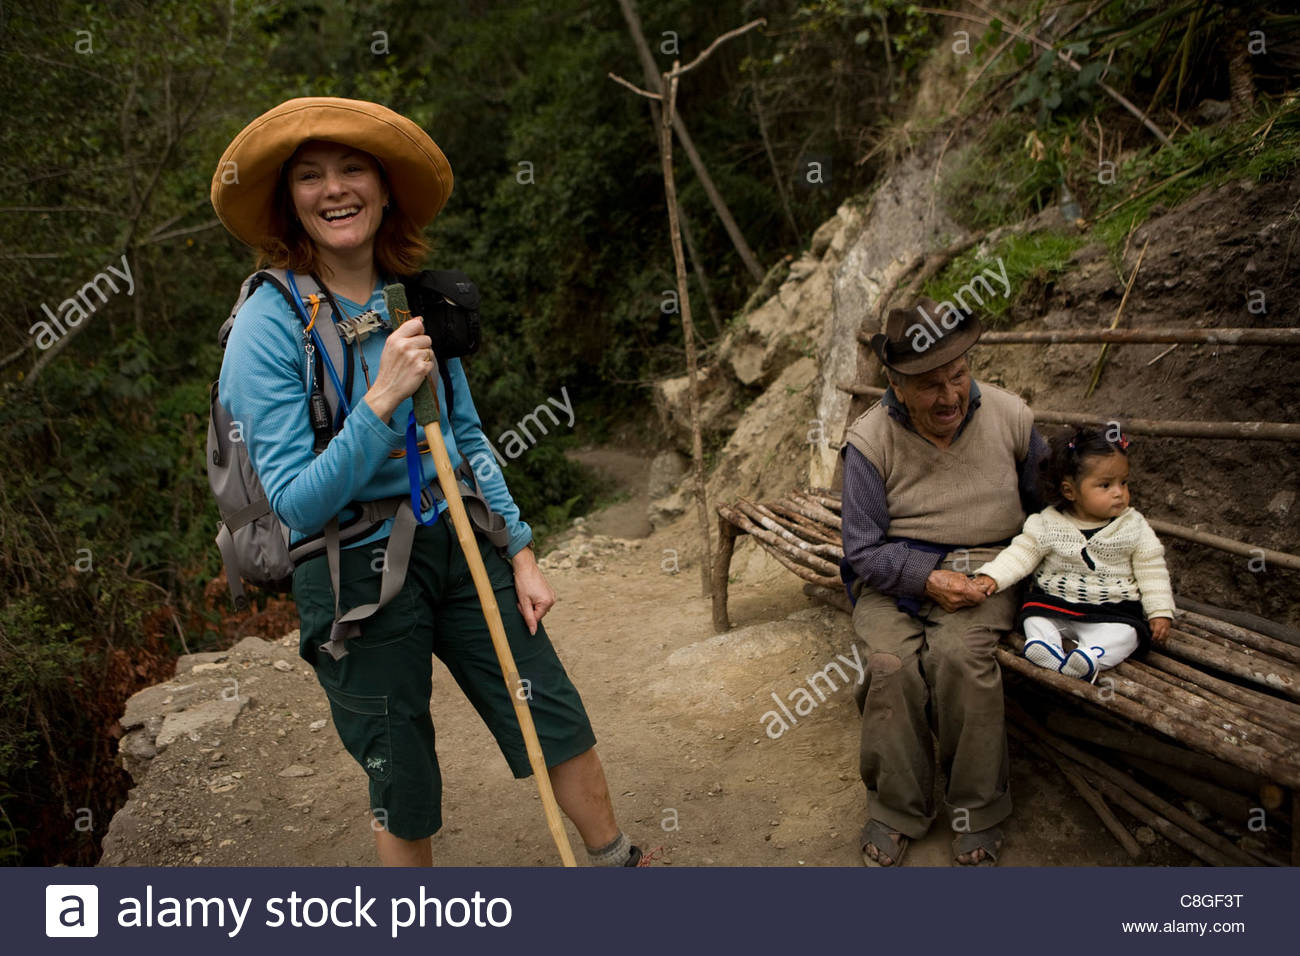 A hiker pauses to meet a 100 year old man and his great granddaughter. - Stock Image